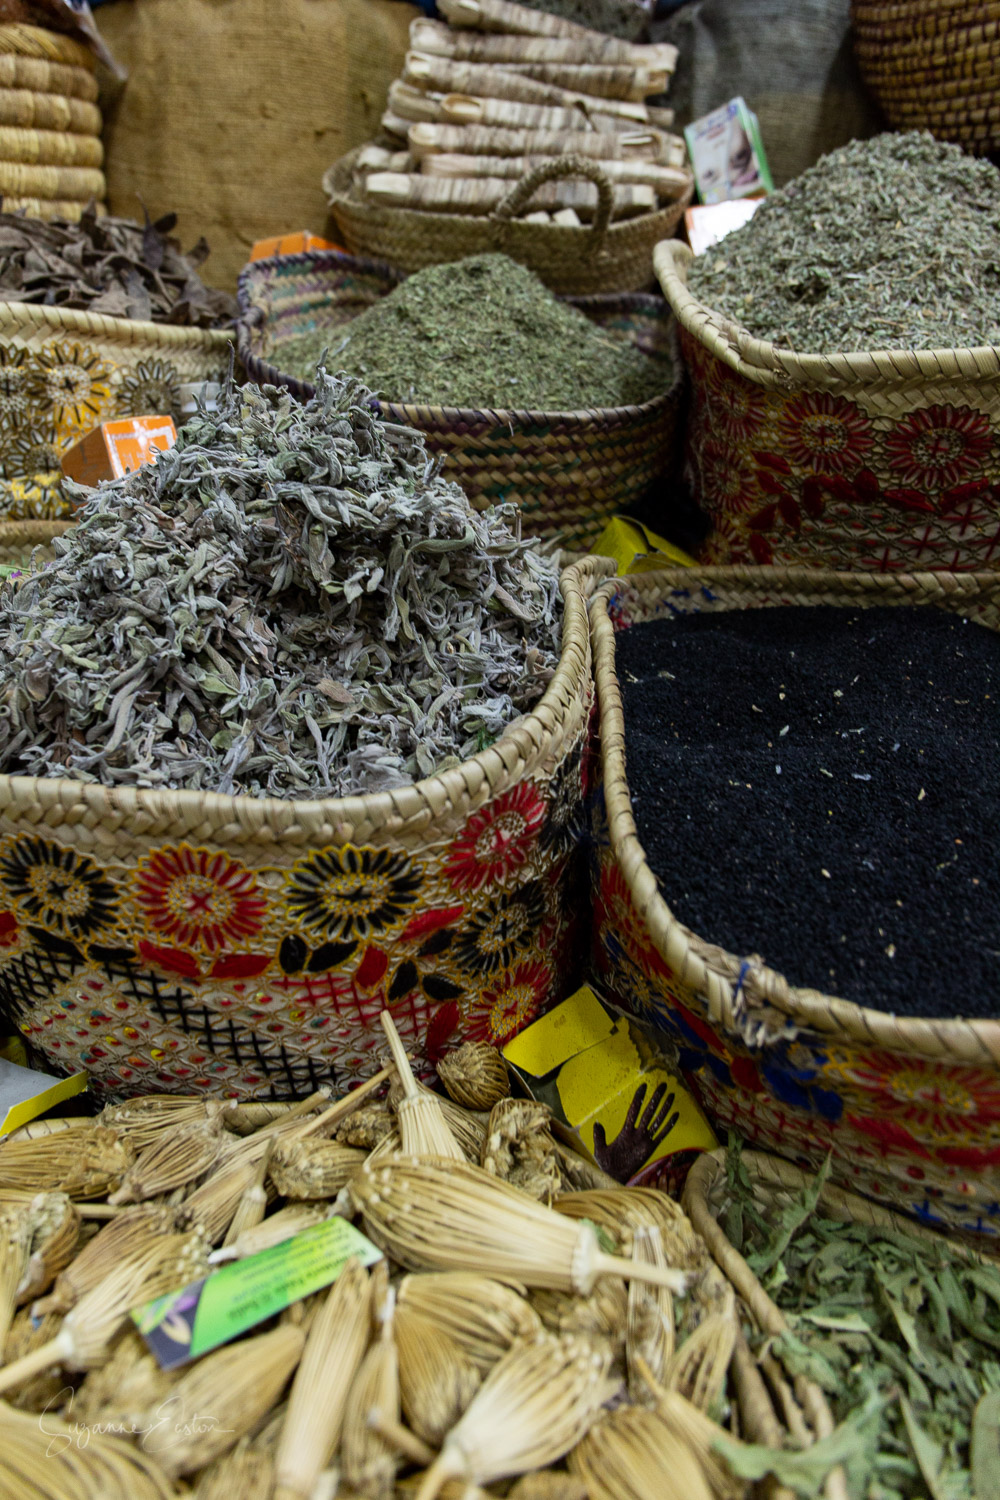 Teas and herbs in a Marrakech spice shop